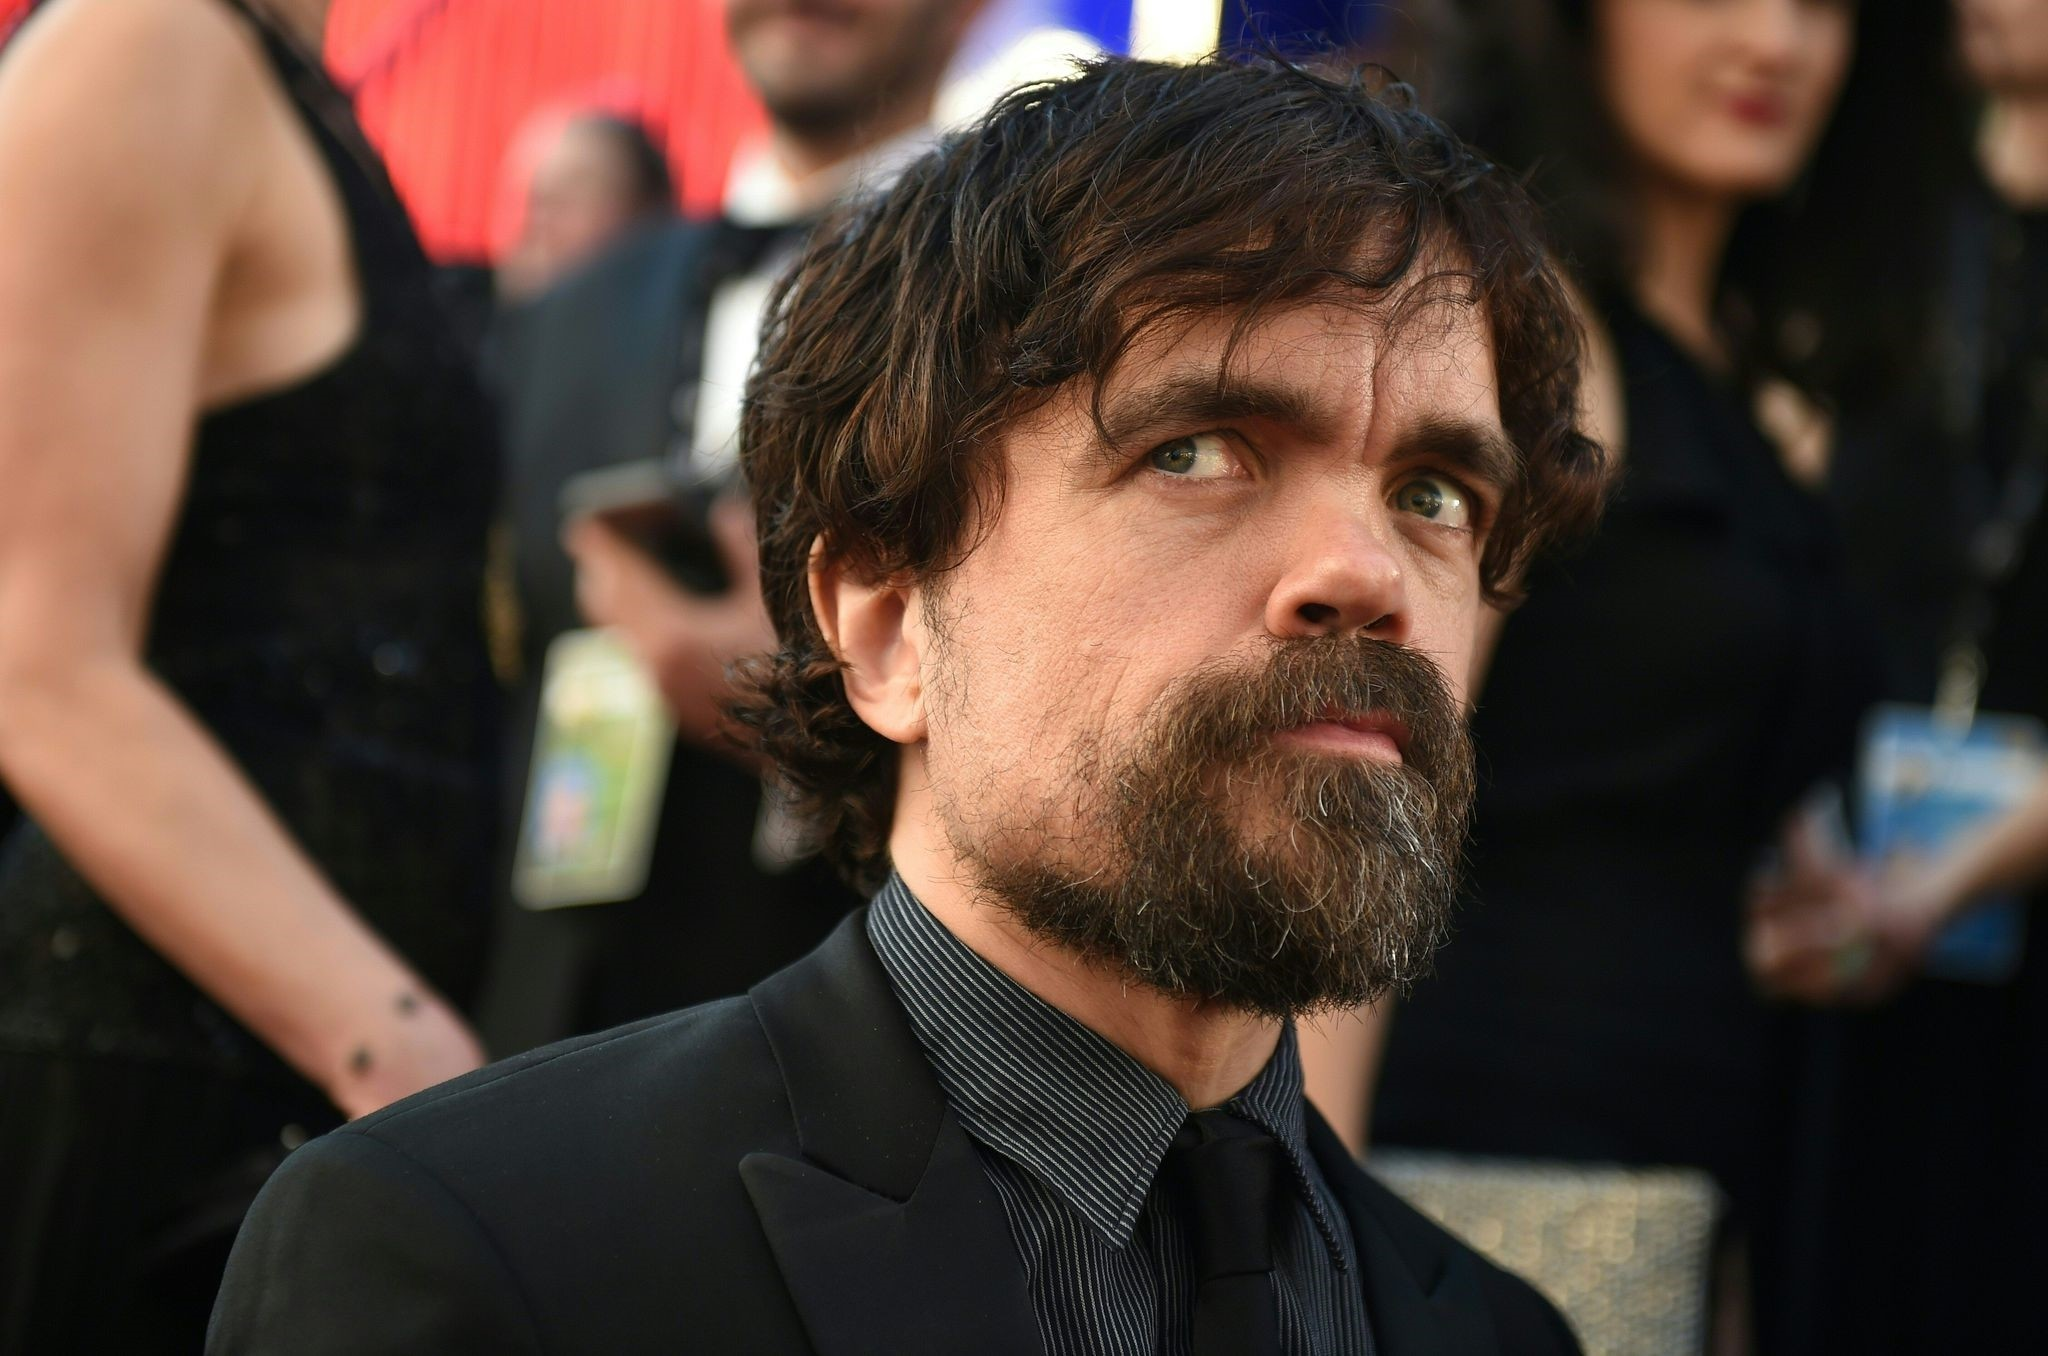 This file photo taken on January 29, 2017 shows actor Peter Dinklage arriving for the 23rd Annual Screen Actors Guild Awards in Los Angeles. (AFP Photo)